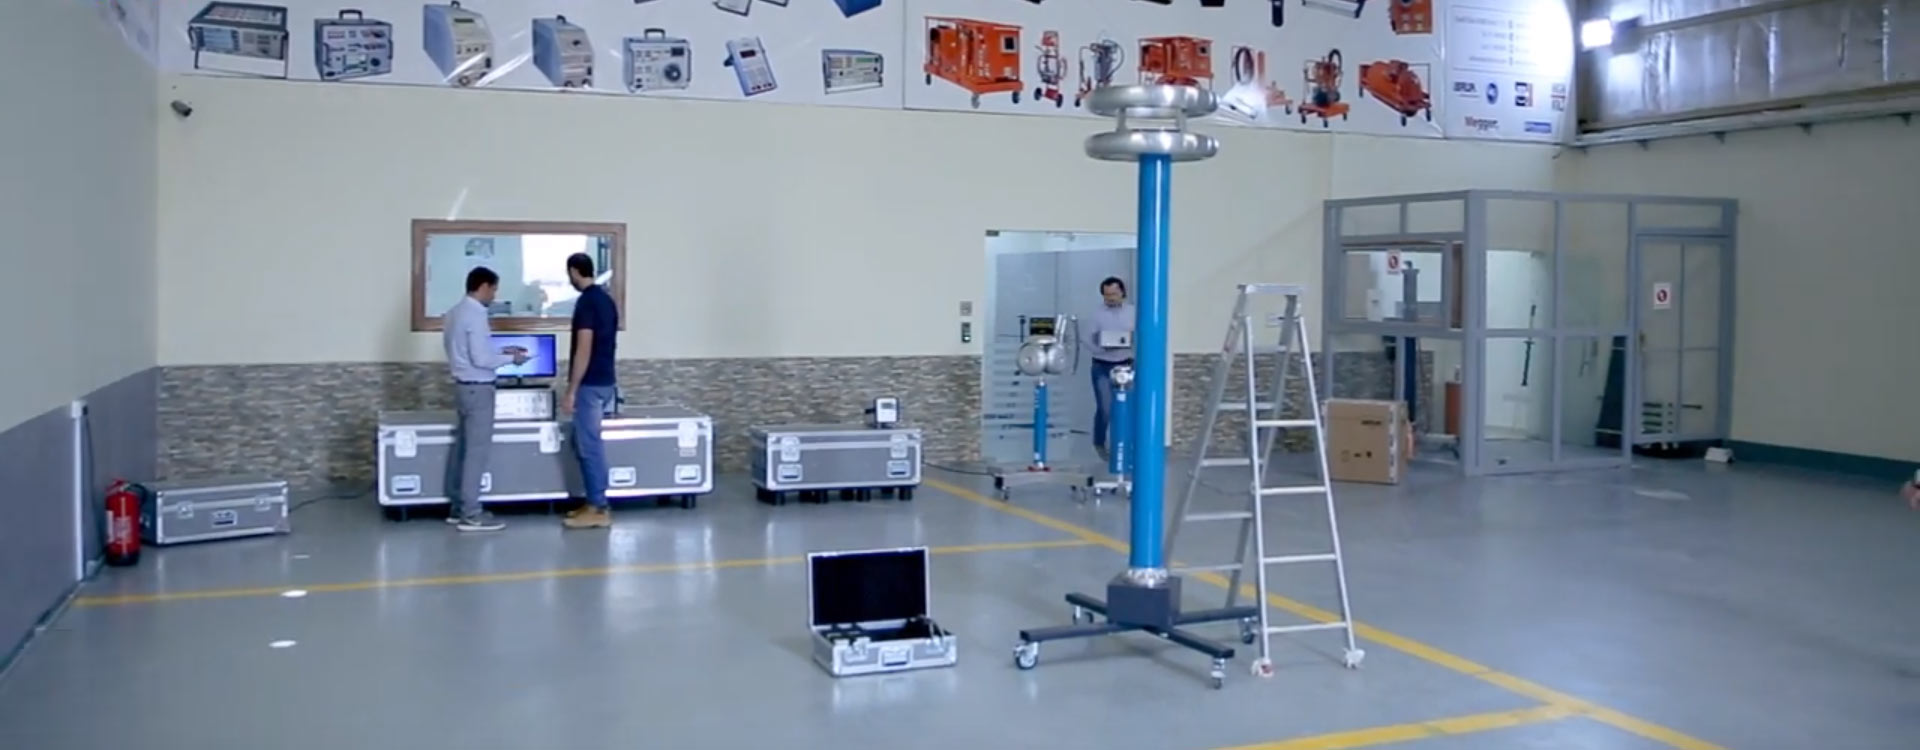 High Voltage Electrical Test-Equipment After Sales Services